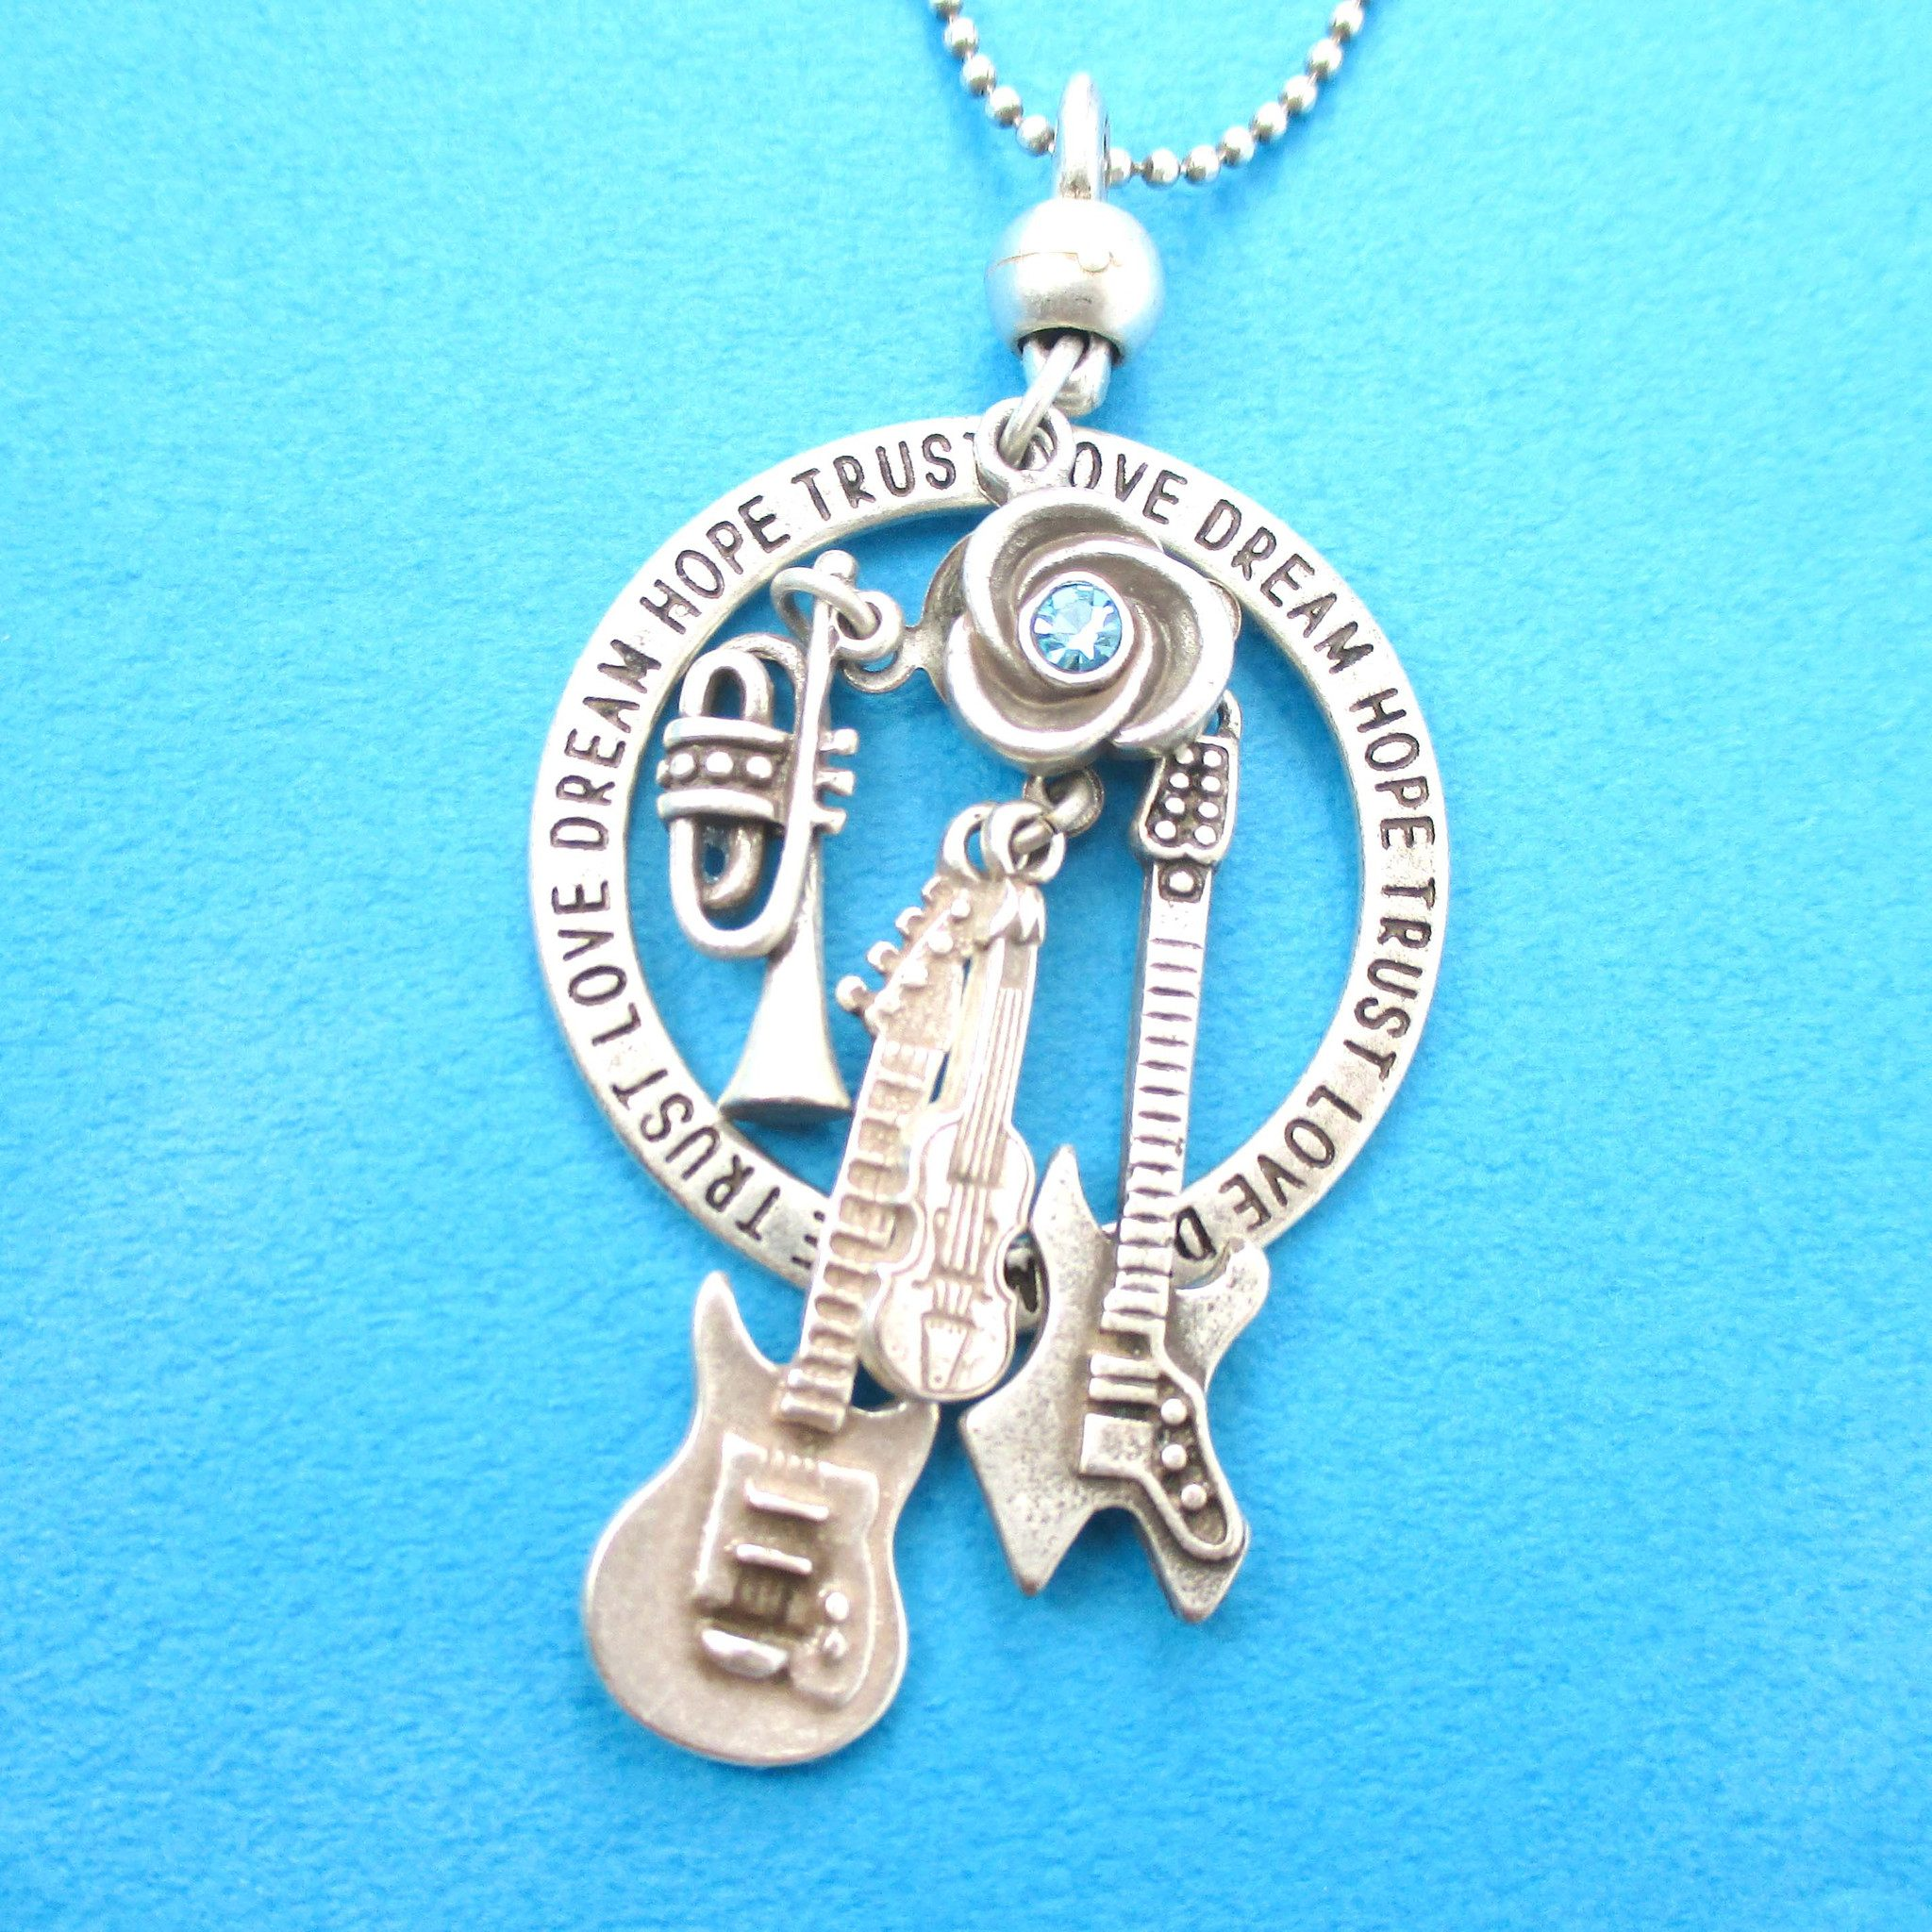 Guitar Violin Trumpet Musical Instrument Themed Charm Necklace in Silver